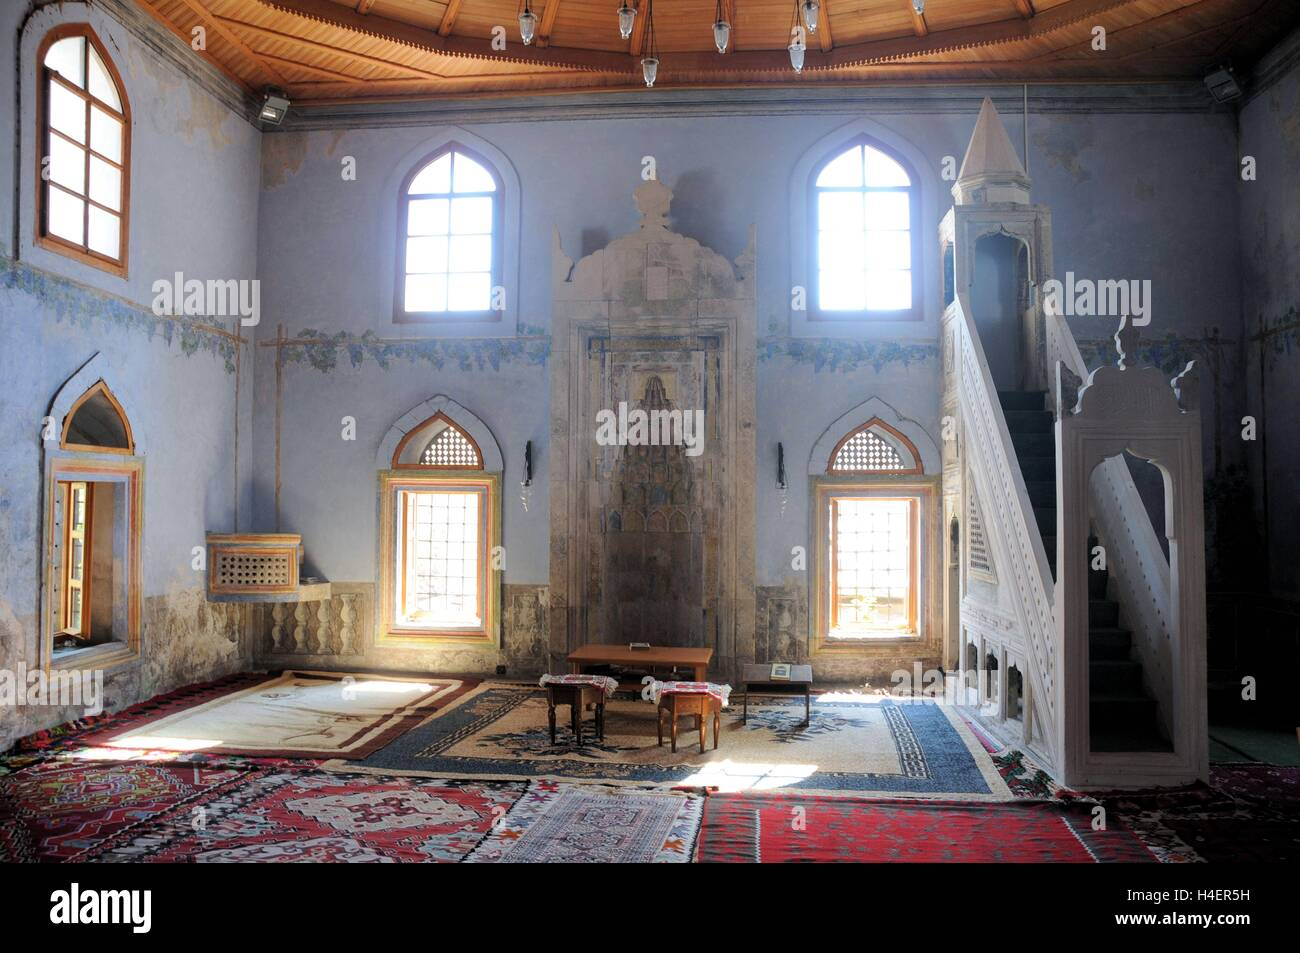 A mosque in Mostar Bosnia Herzegovina. - Stock Image